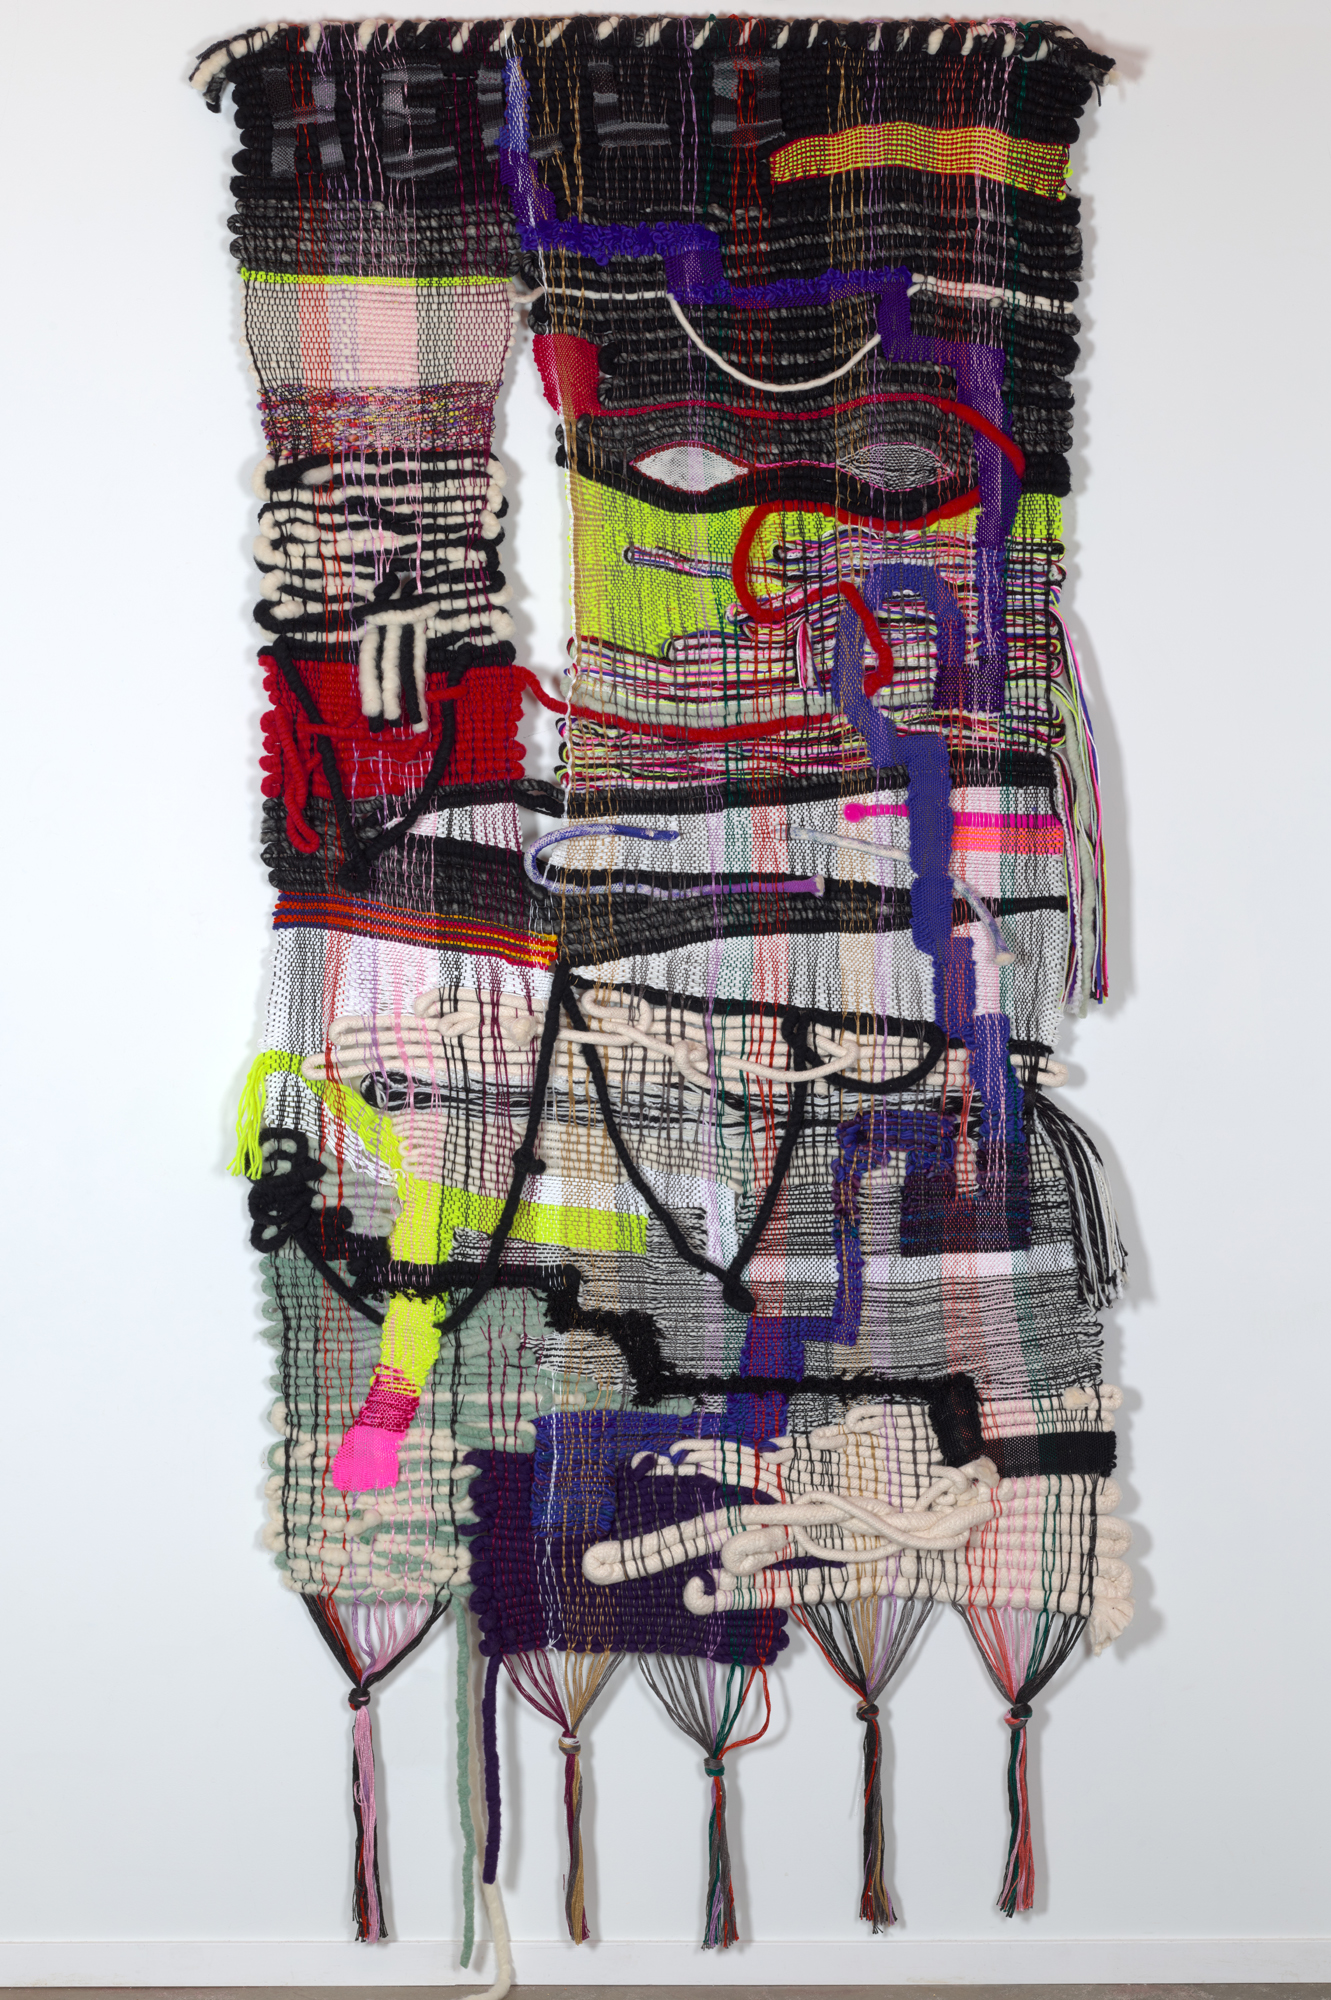 Hello Uncertainty, 2018, 96 x 42 in, wool, cotton, acrylic fibers